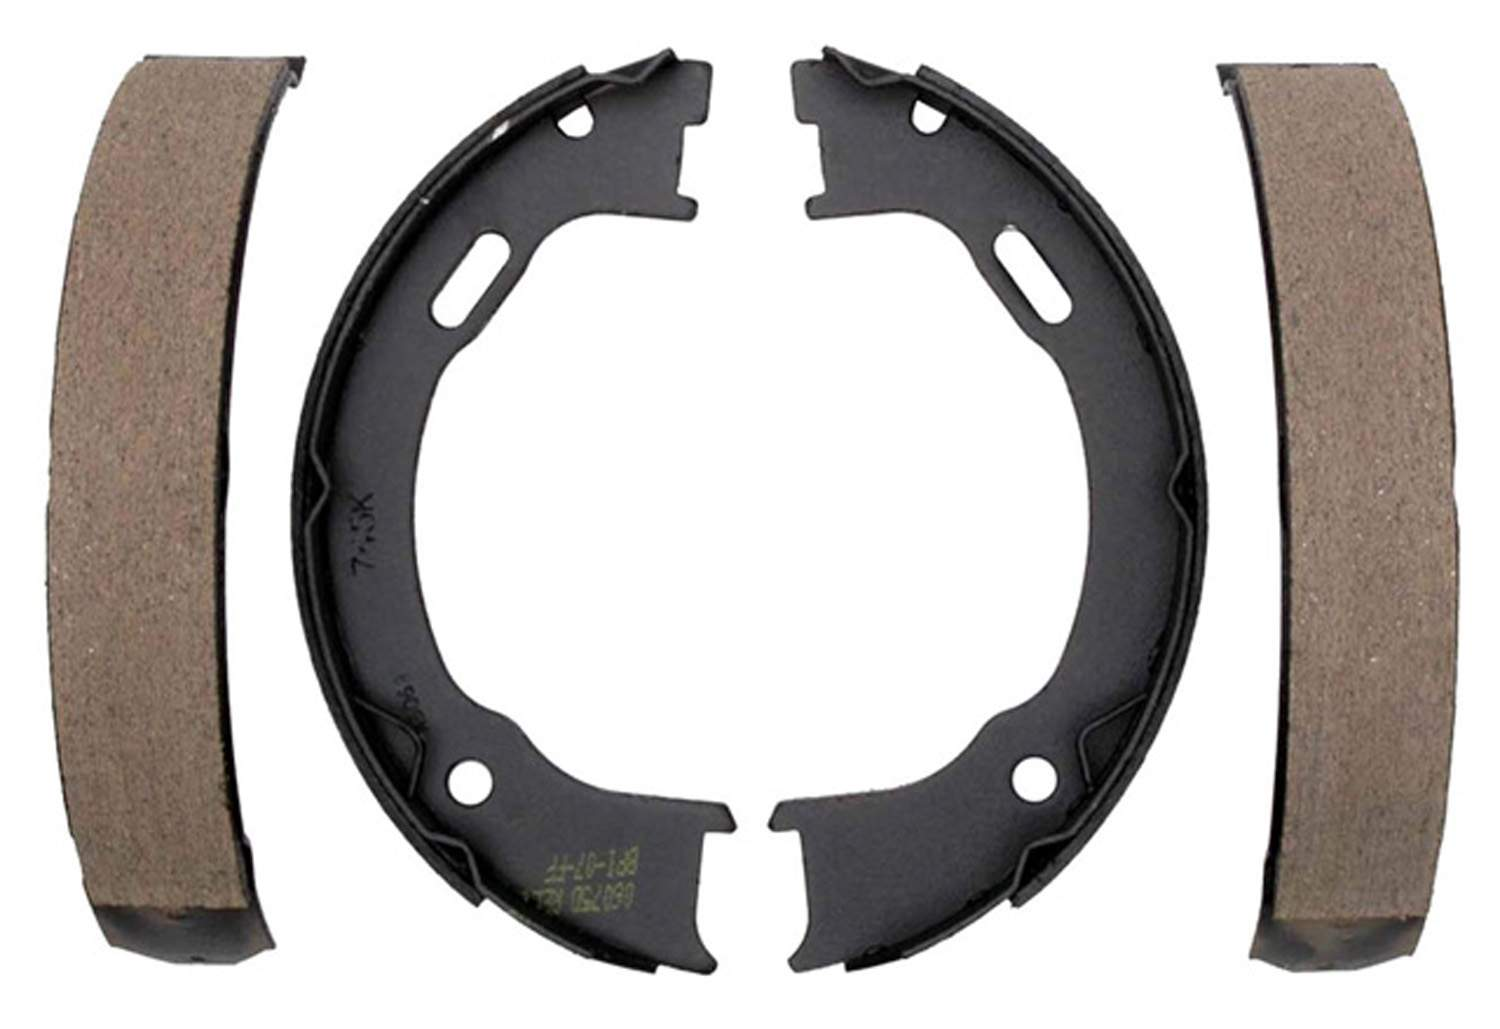 ACDELCO GOLD/PROFESSIONAL BRAKES - Bonded Parking Brake Shoe - ADU 17745B